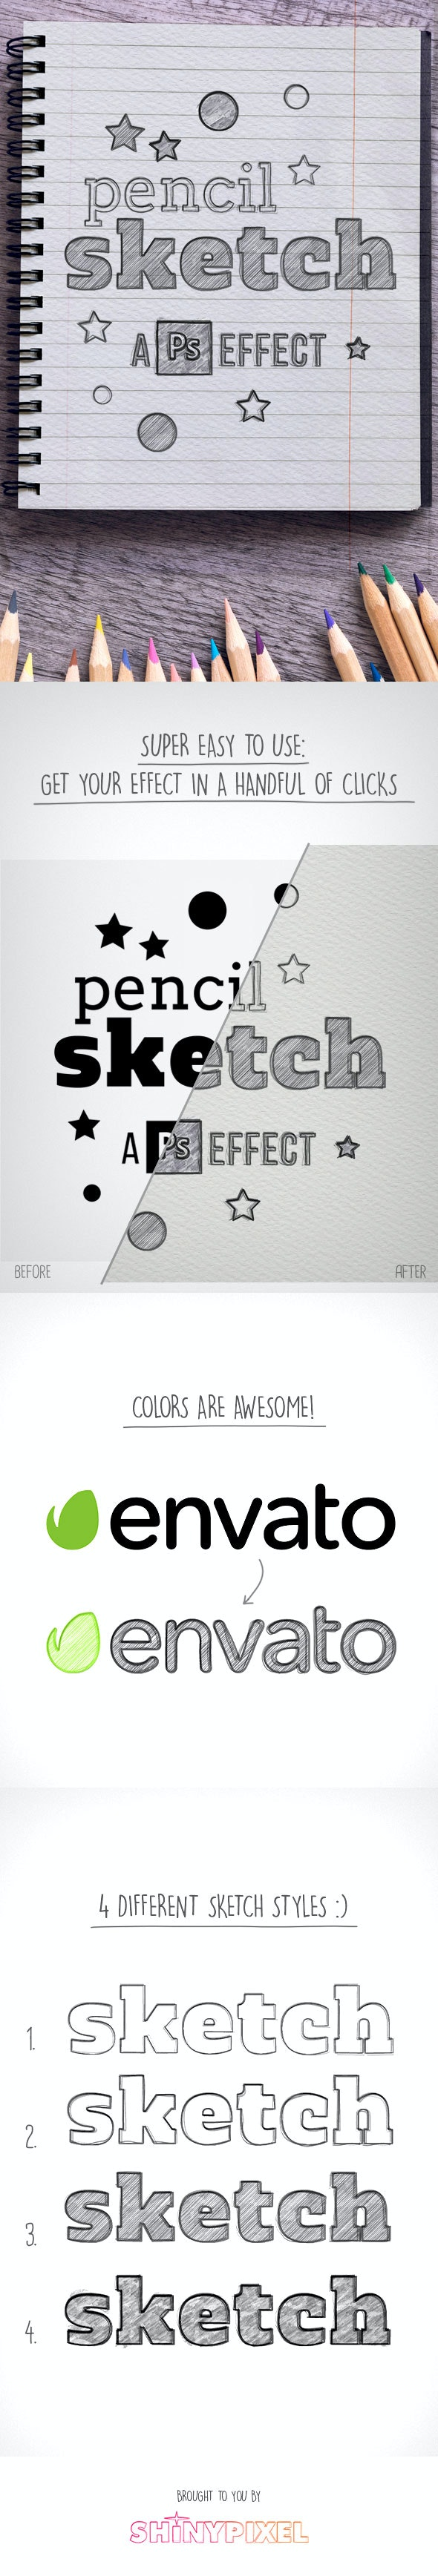 Pencil Sketch for Photoshop - Text Effects Actions